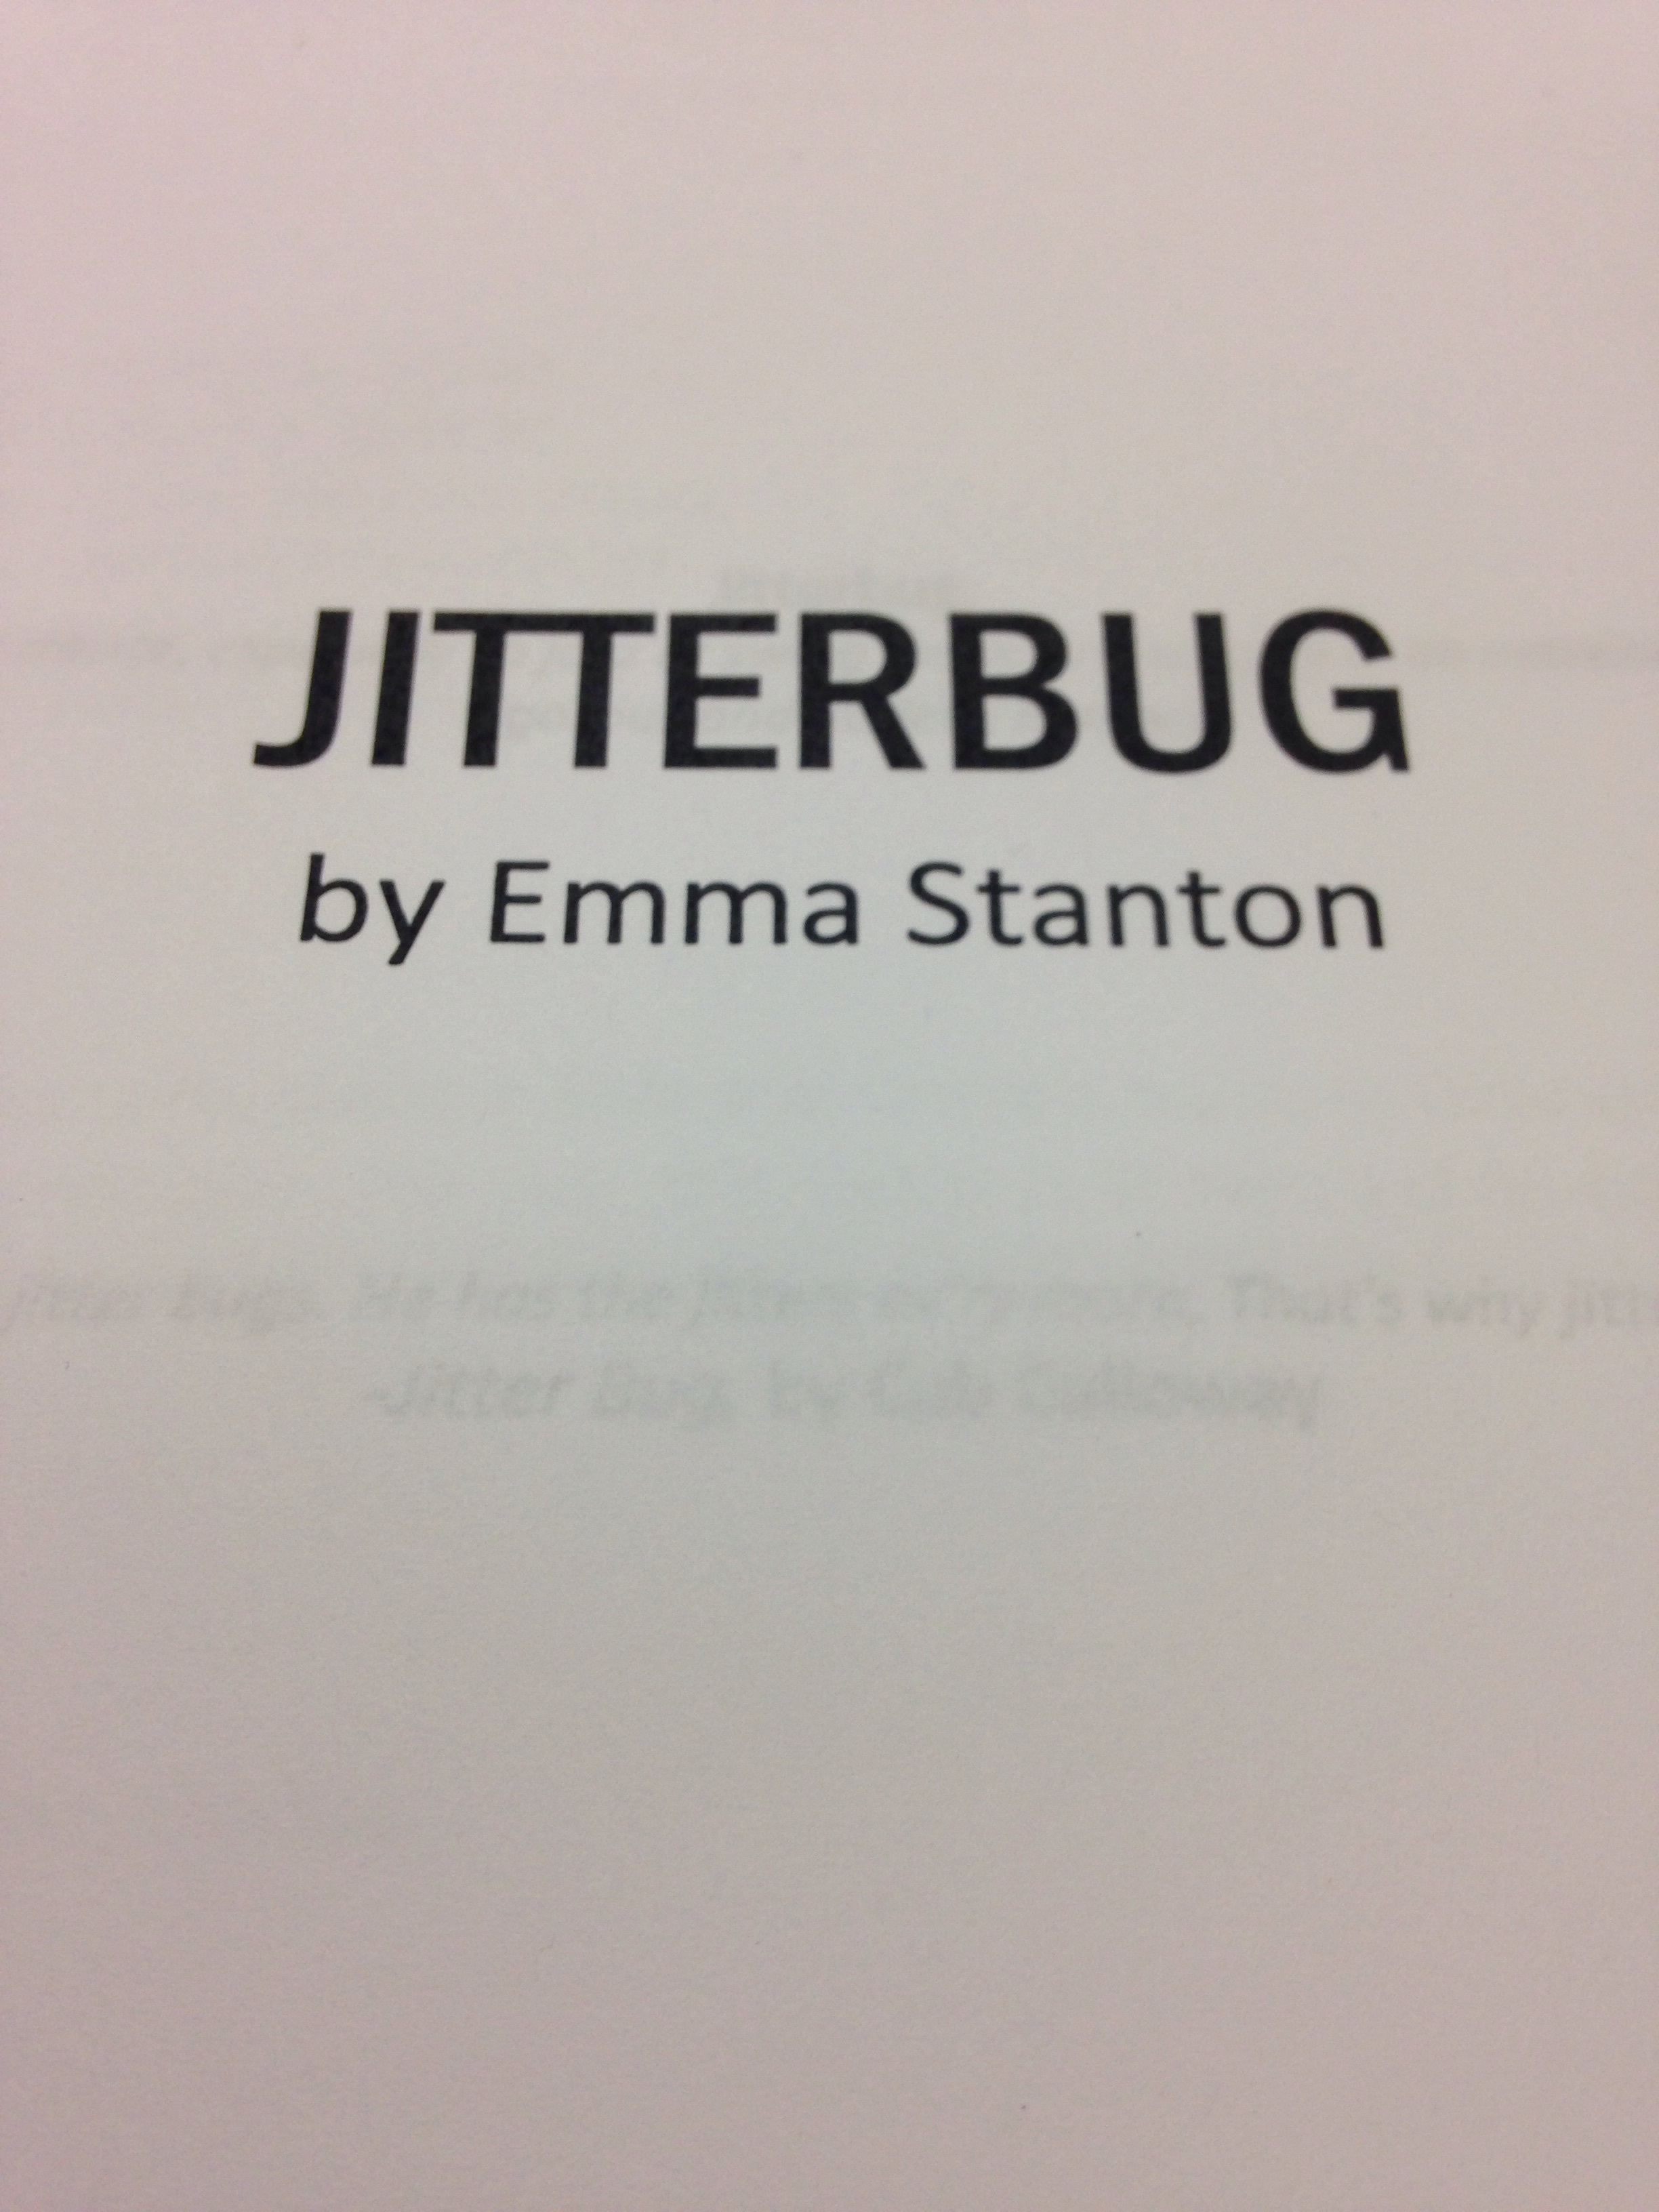 JITTERBUG written by Emma Stanton and directed by Marina McClure. November 4, 2015 @ 7:30 in Dixon Place.